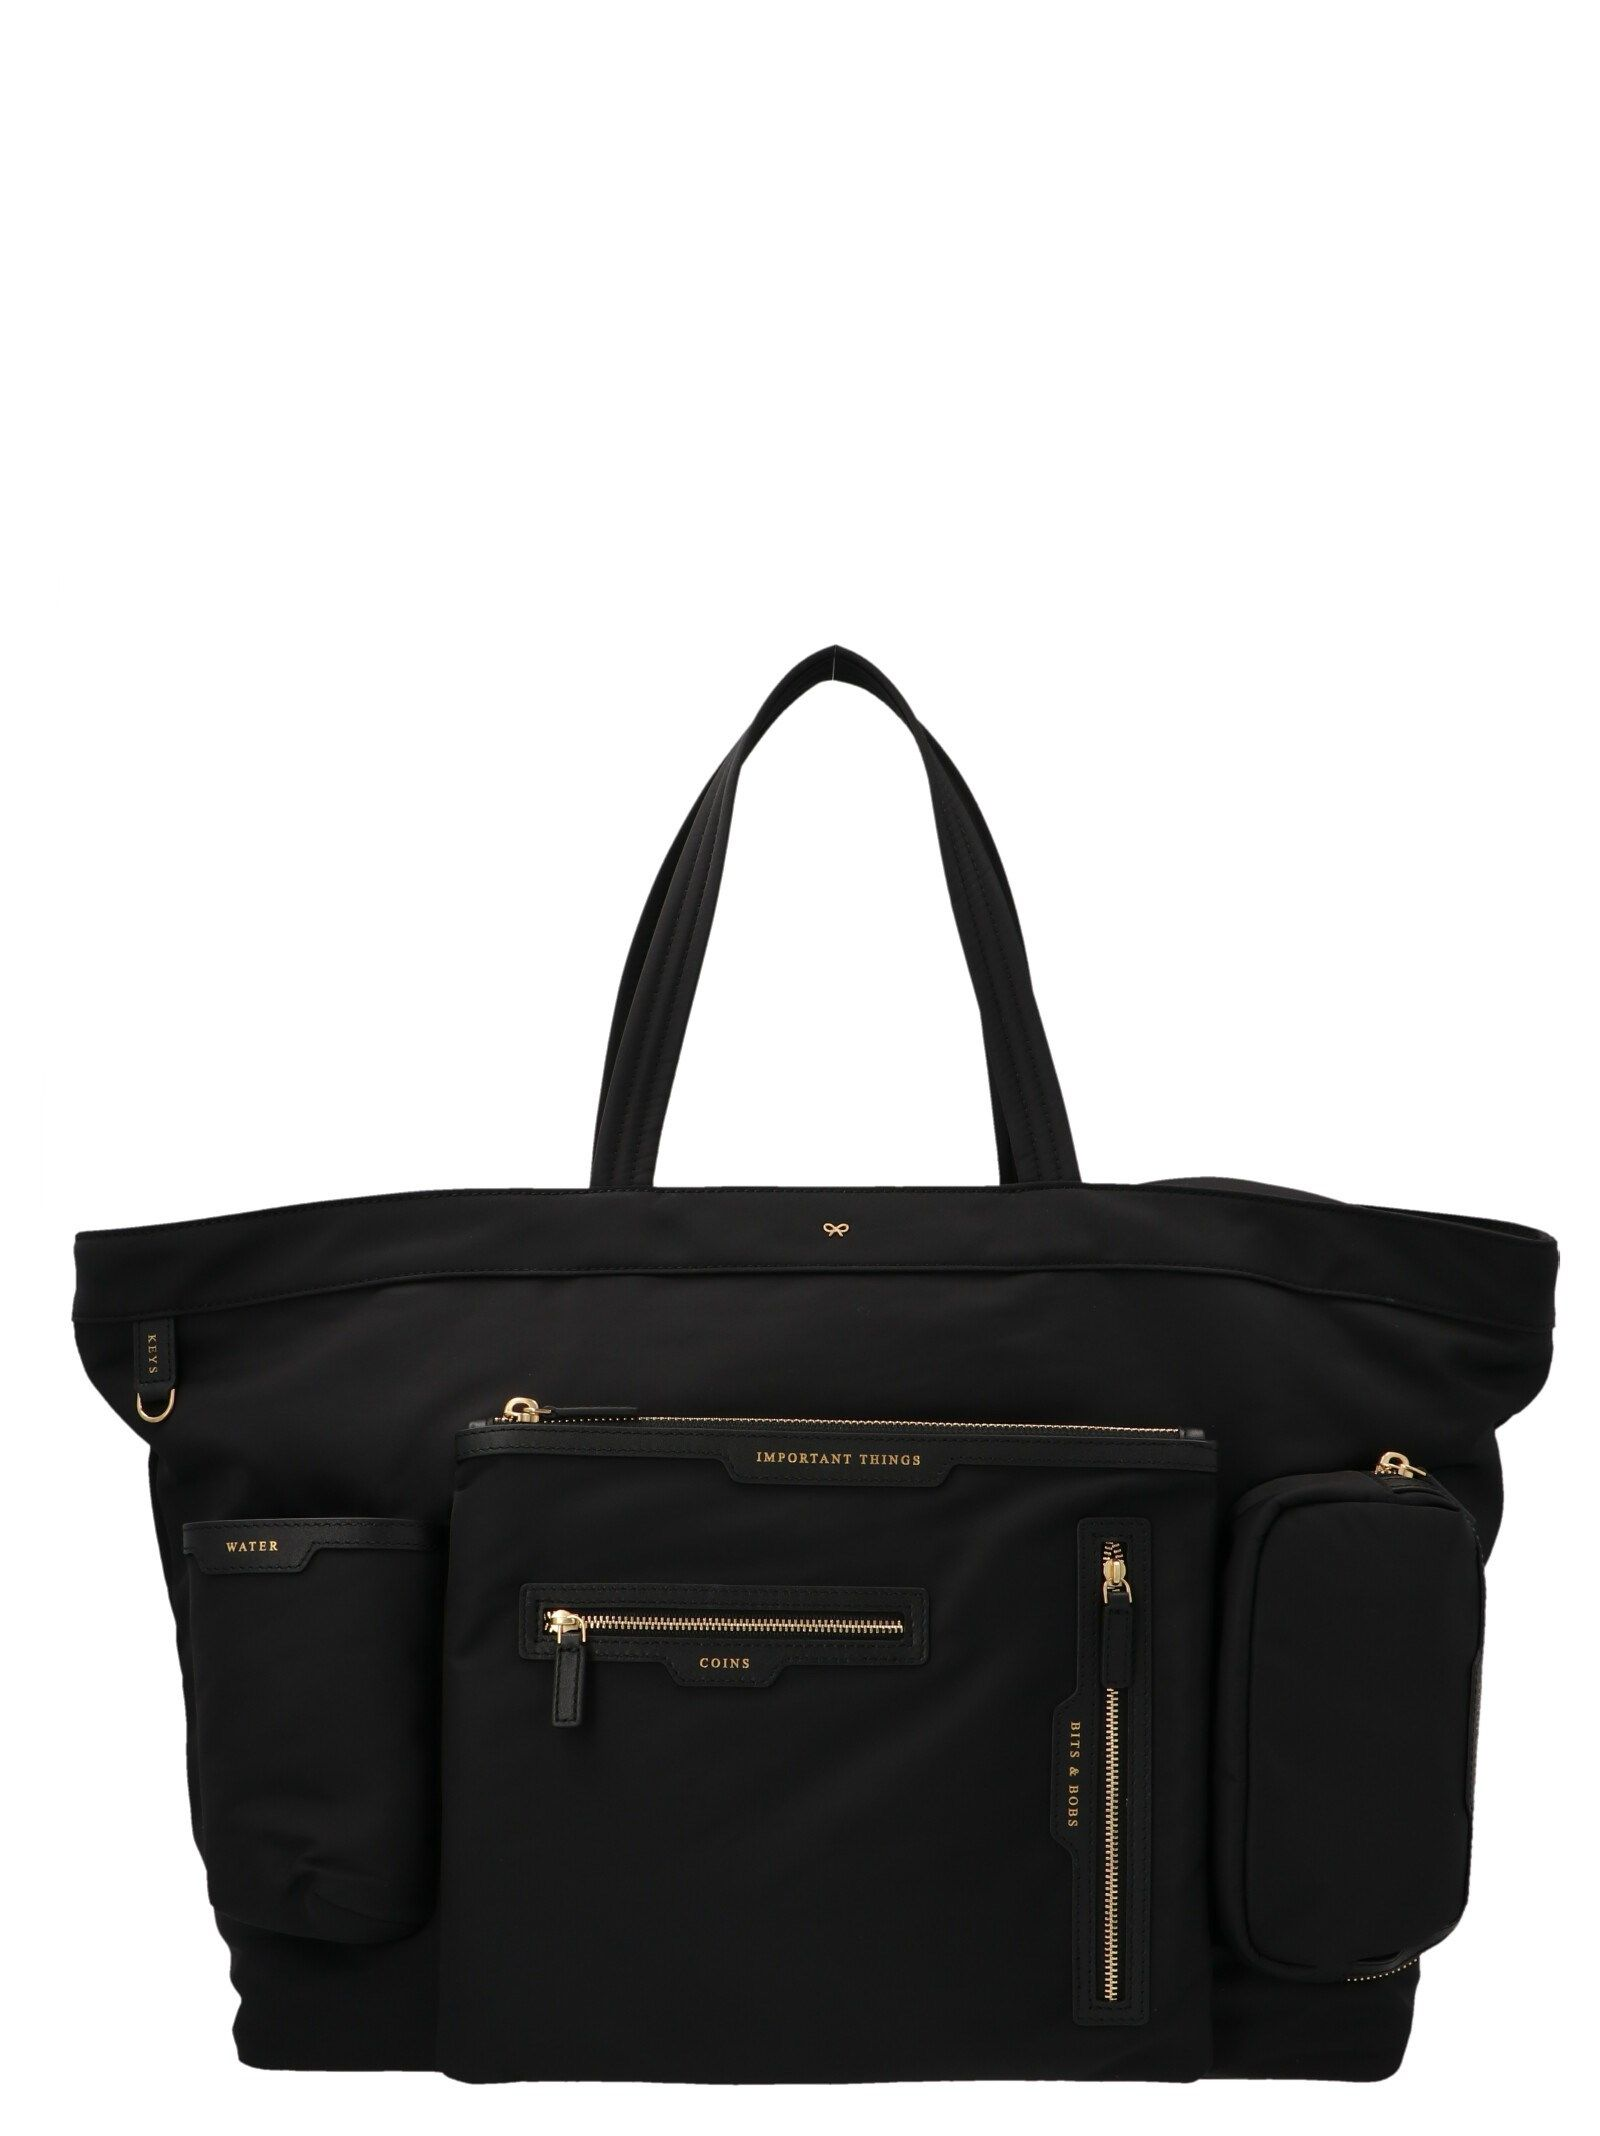 Anya Hindmarch ANYA HINDMARCH WOMEN'S 152655BLACK BLACK OTHER MATERIALS TOTE